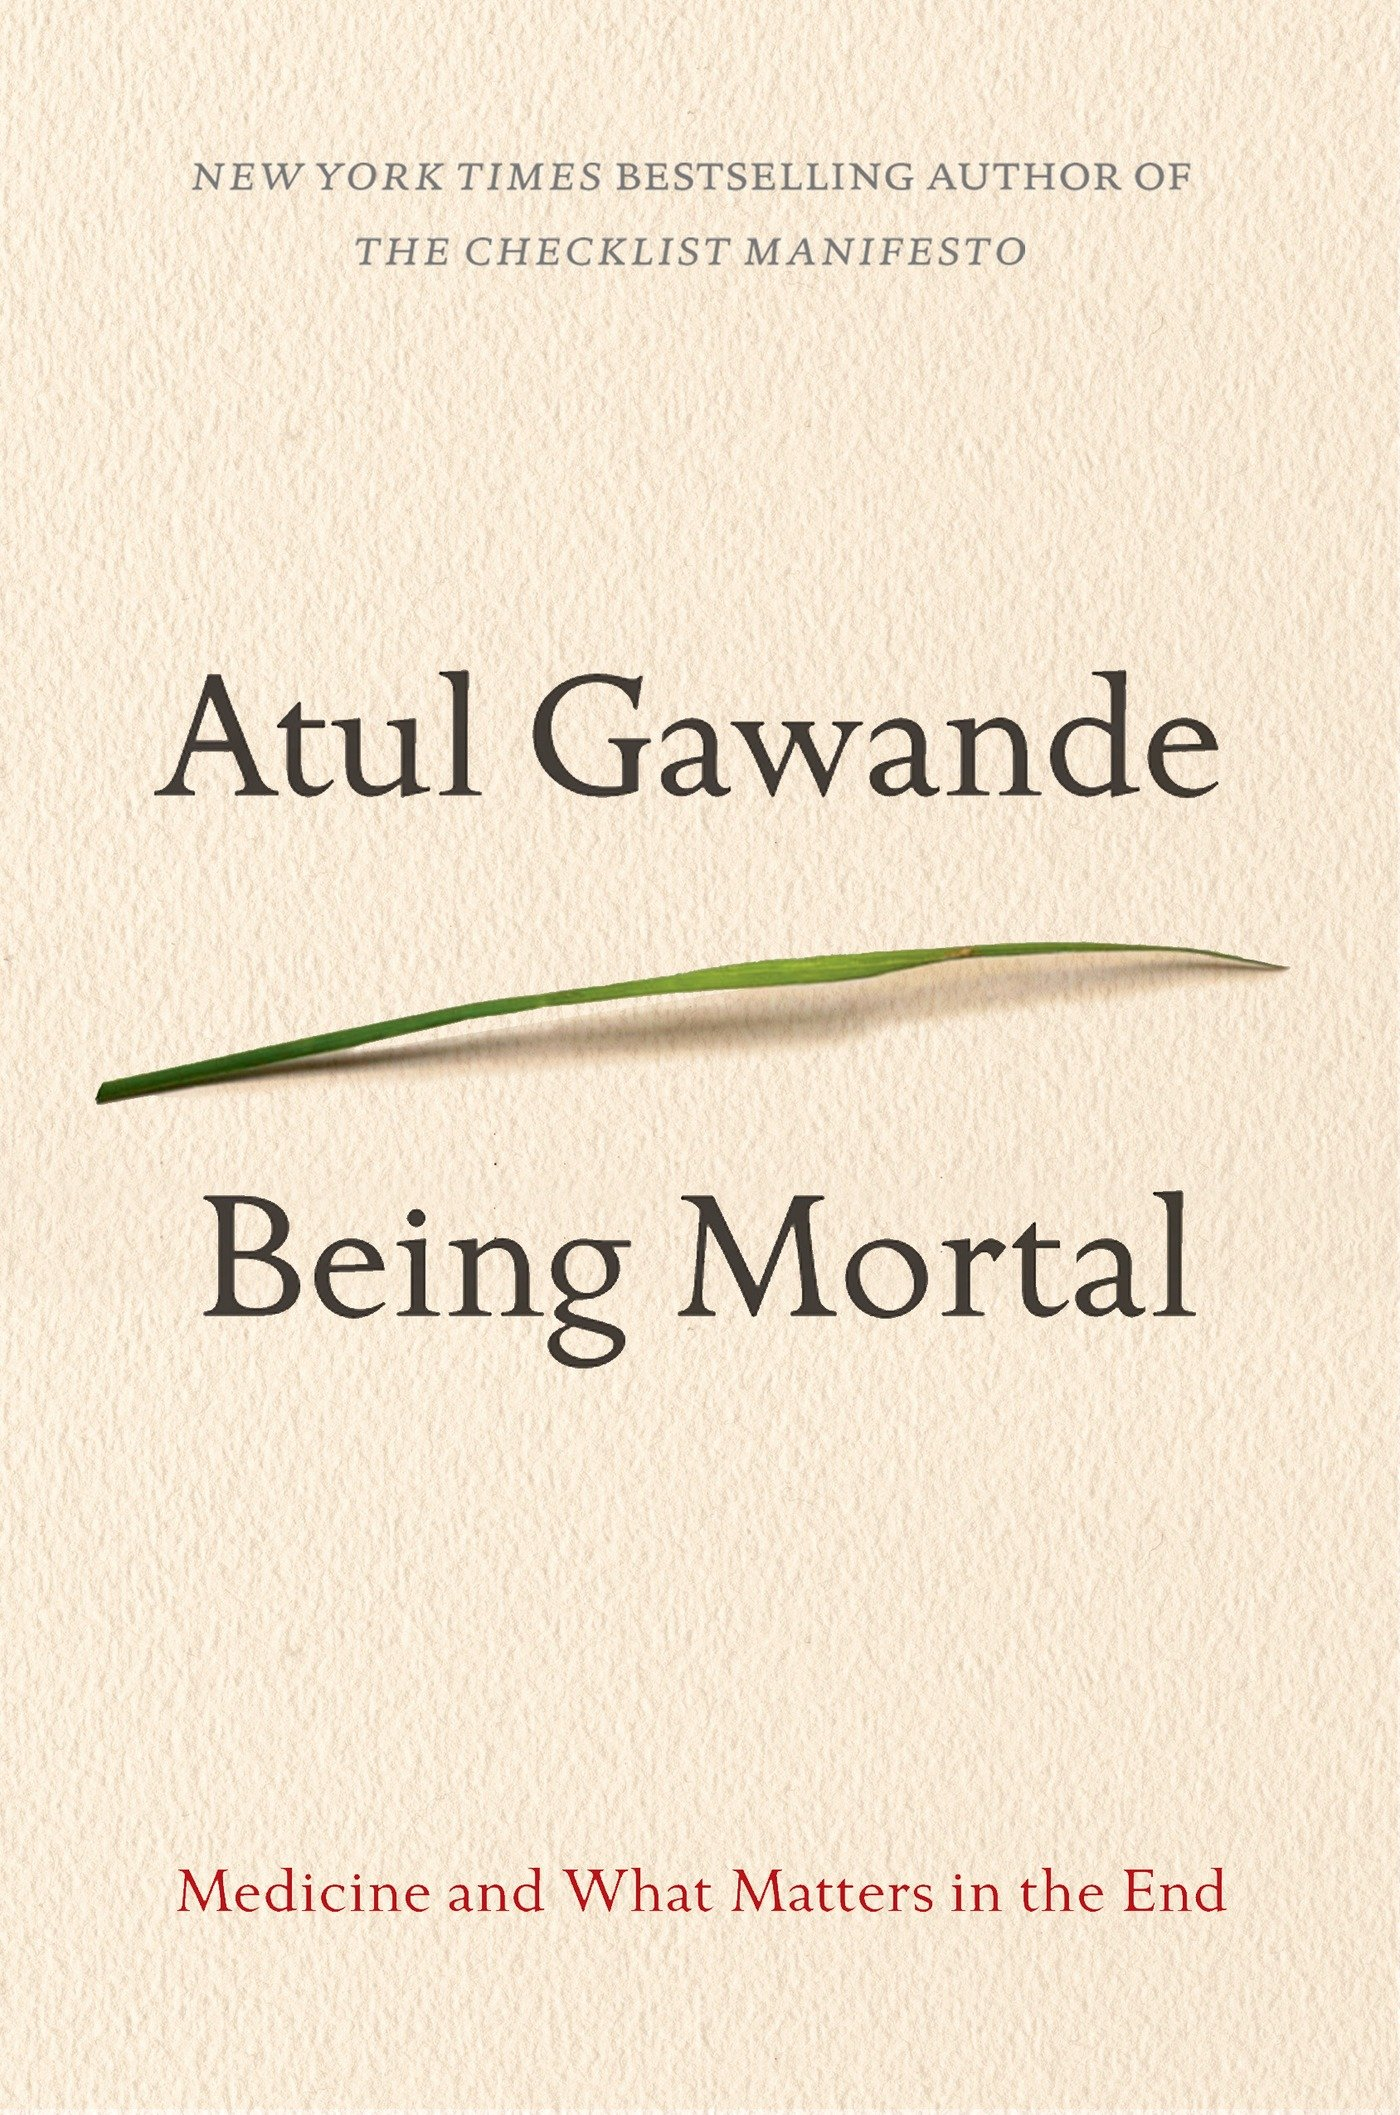 Being moral by Atul Gawande book cover